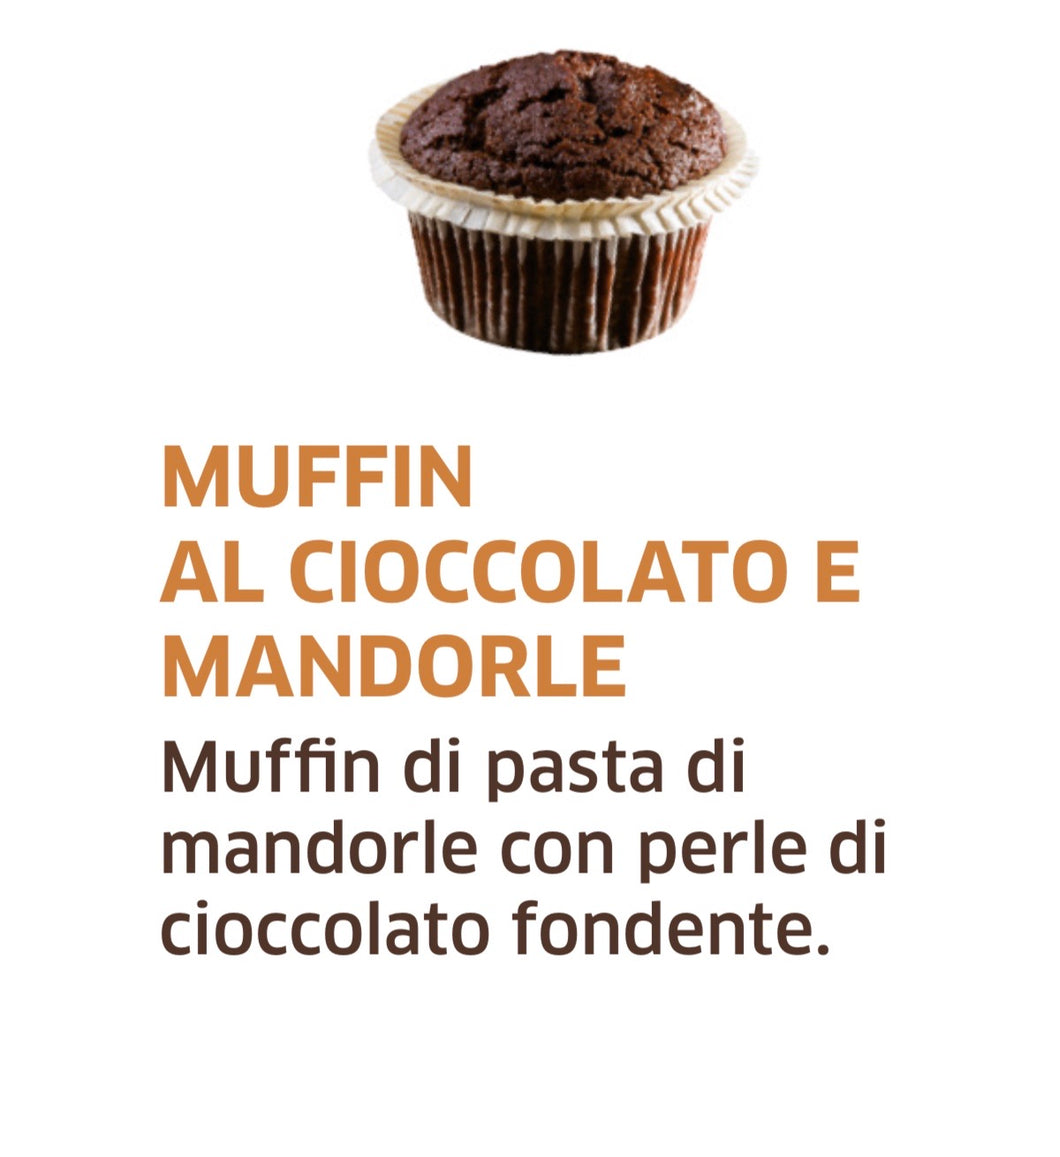 Muffin al Cioccolato e Mandorle H24 - FOR ME H24